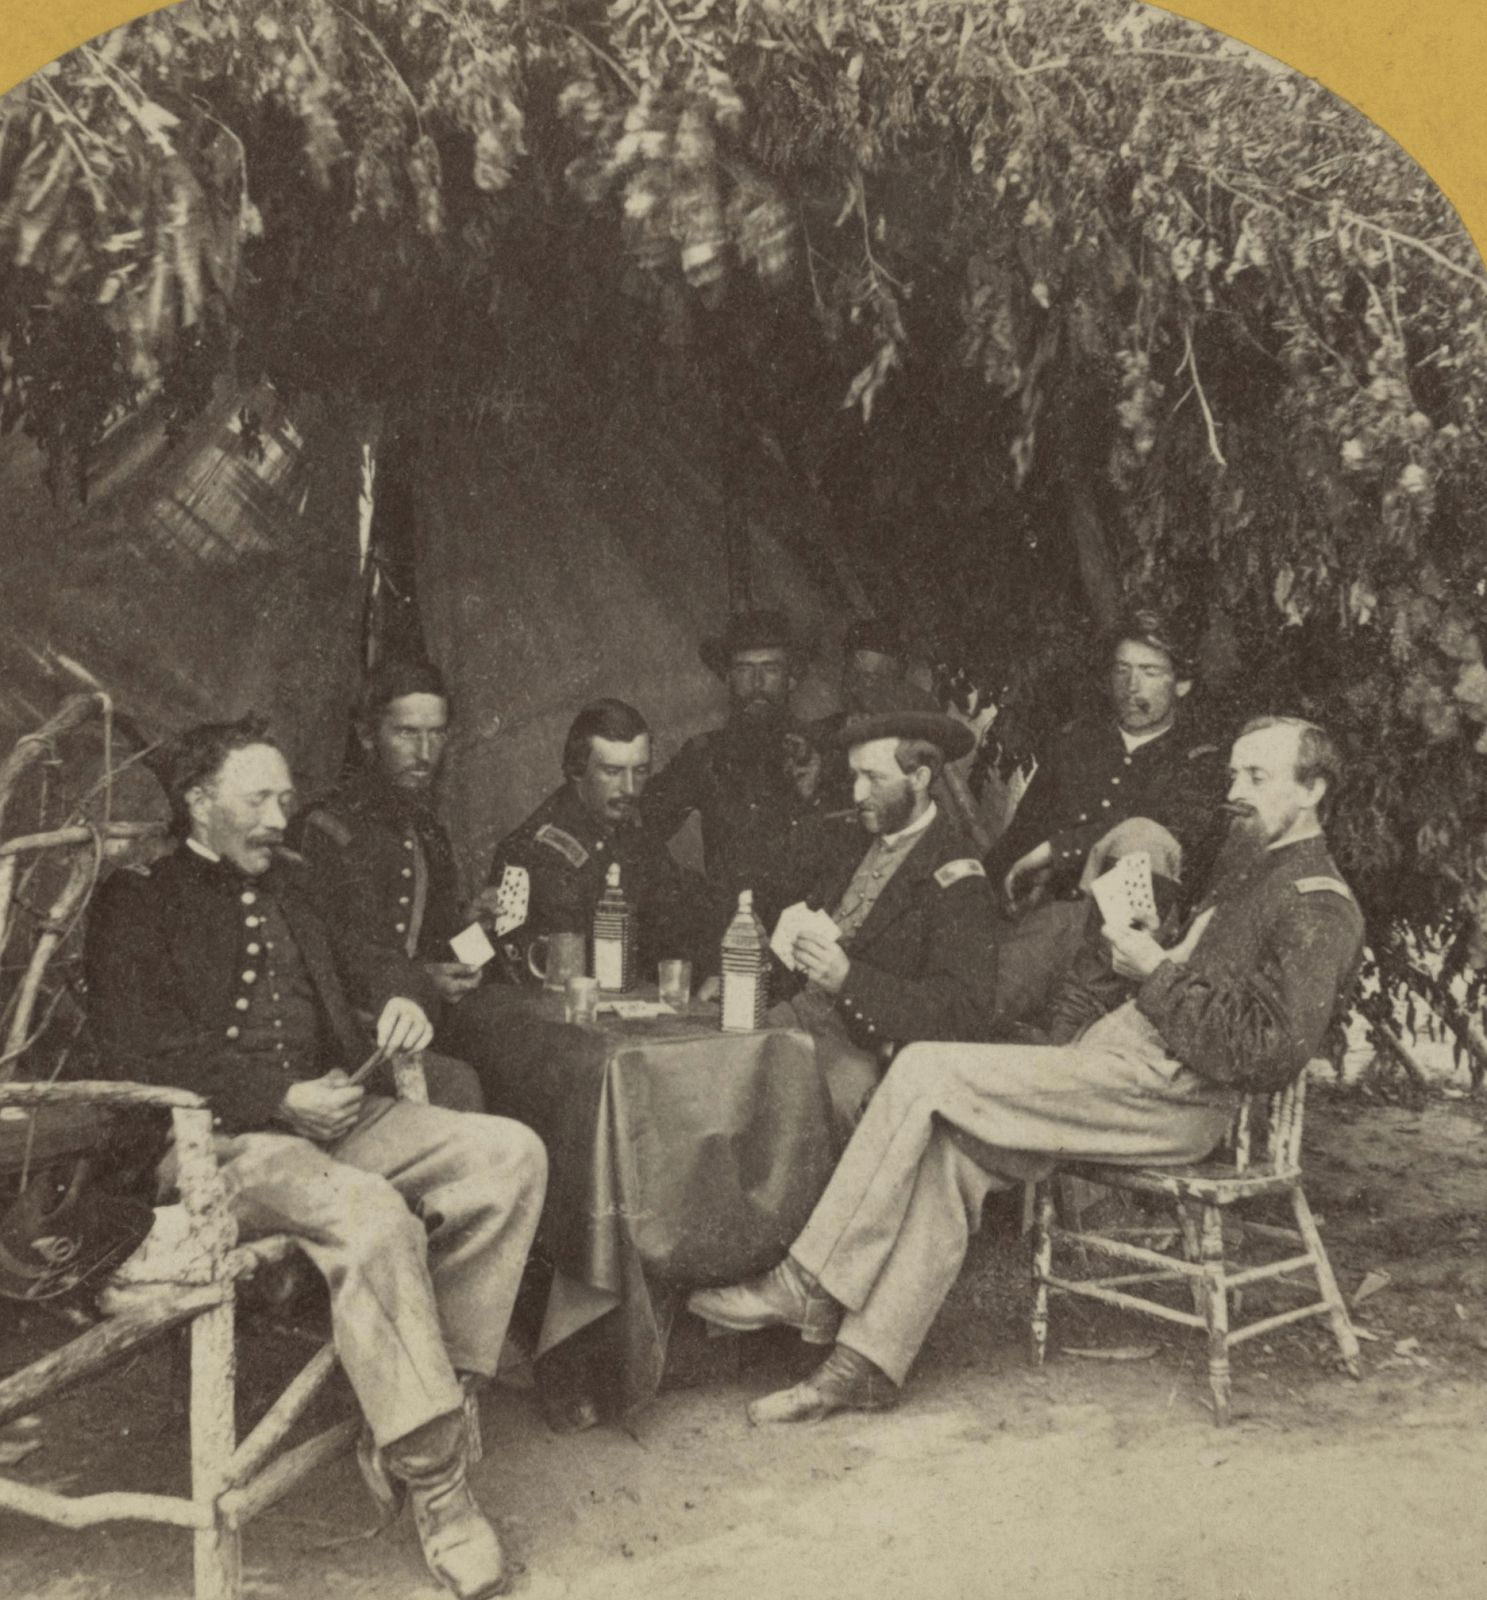 Union soldiers of the 13th illinois volunteer infantry regiment union soldiers of the illinois volunteer infantry regiment playing cards columbus kentucky chubachus library of photographic history fandeluxe Choice Image